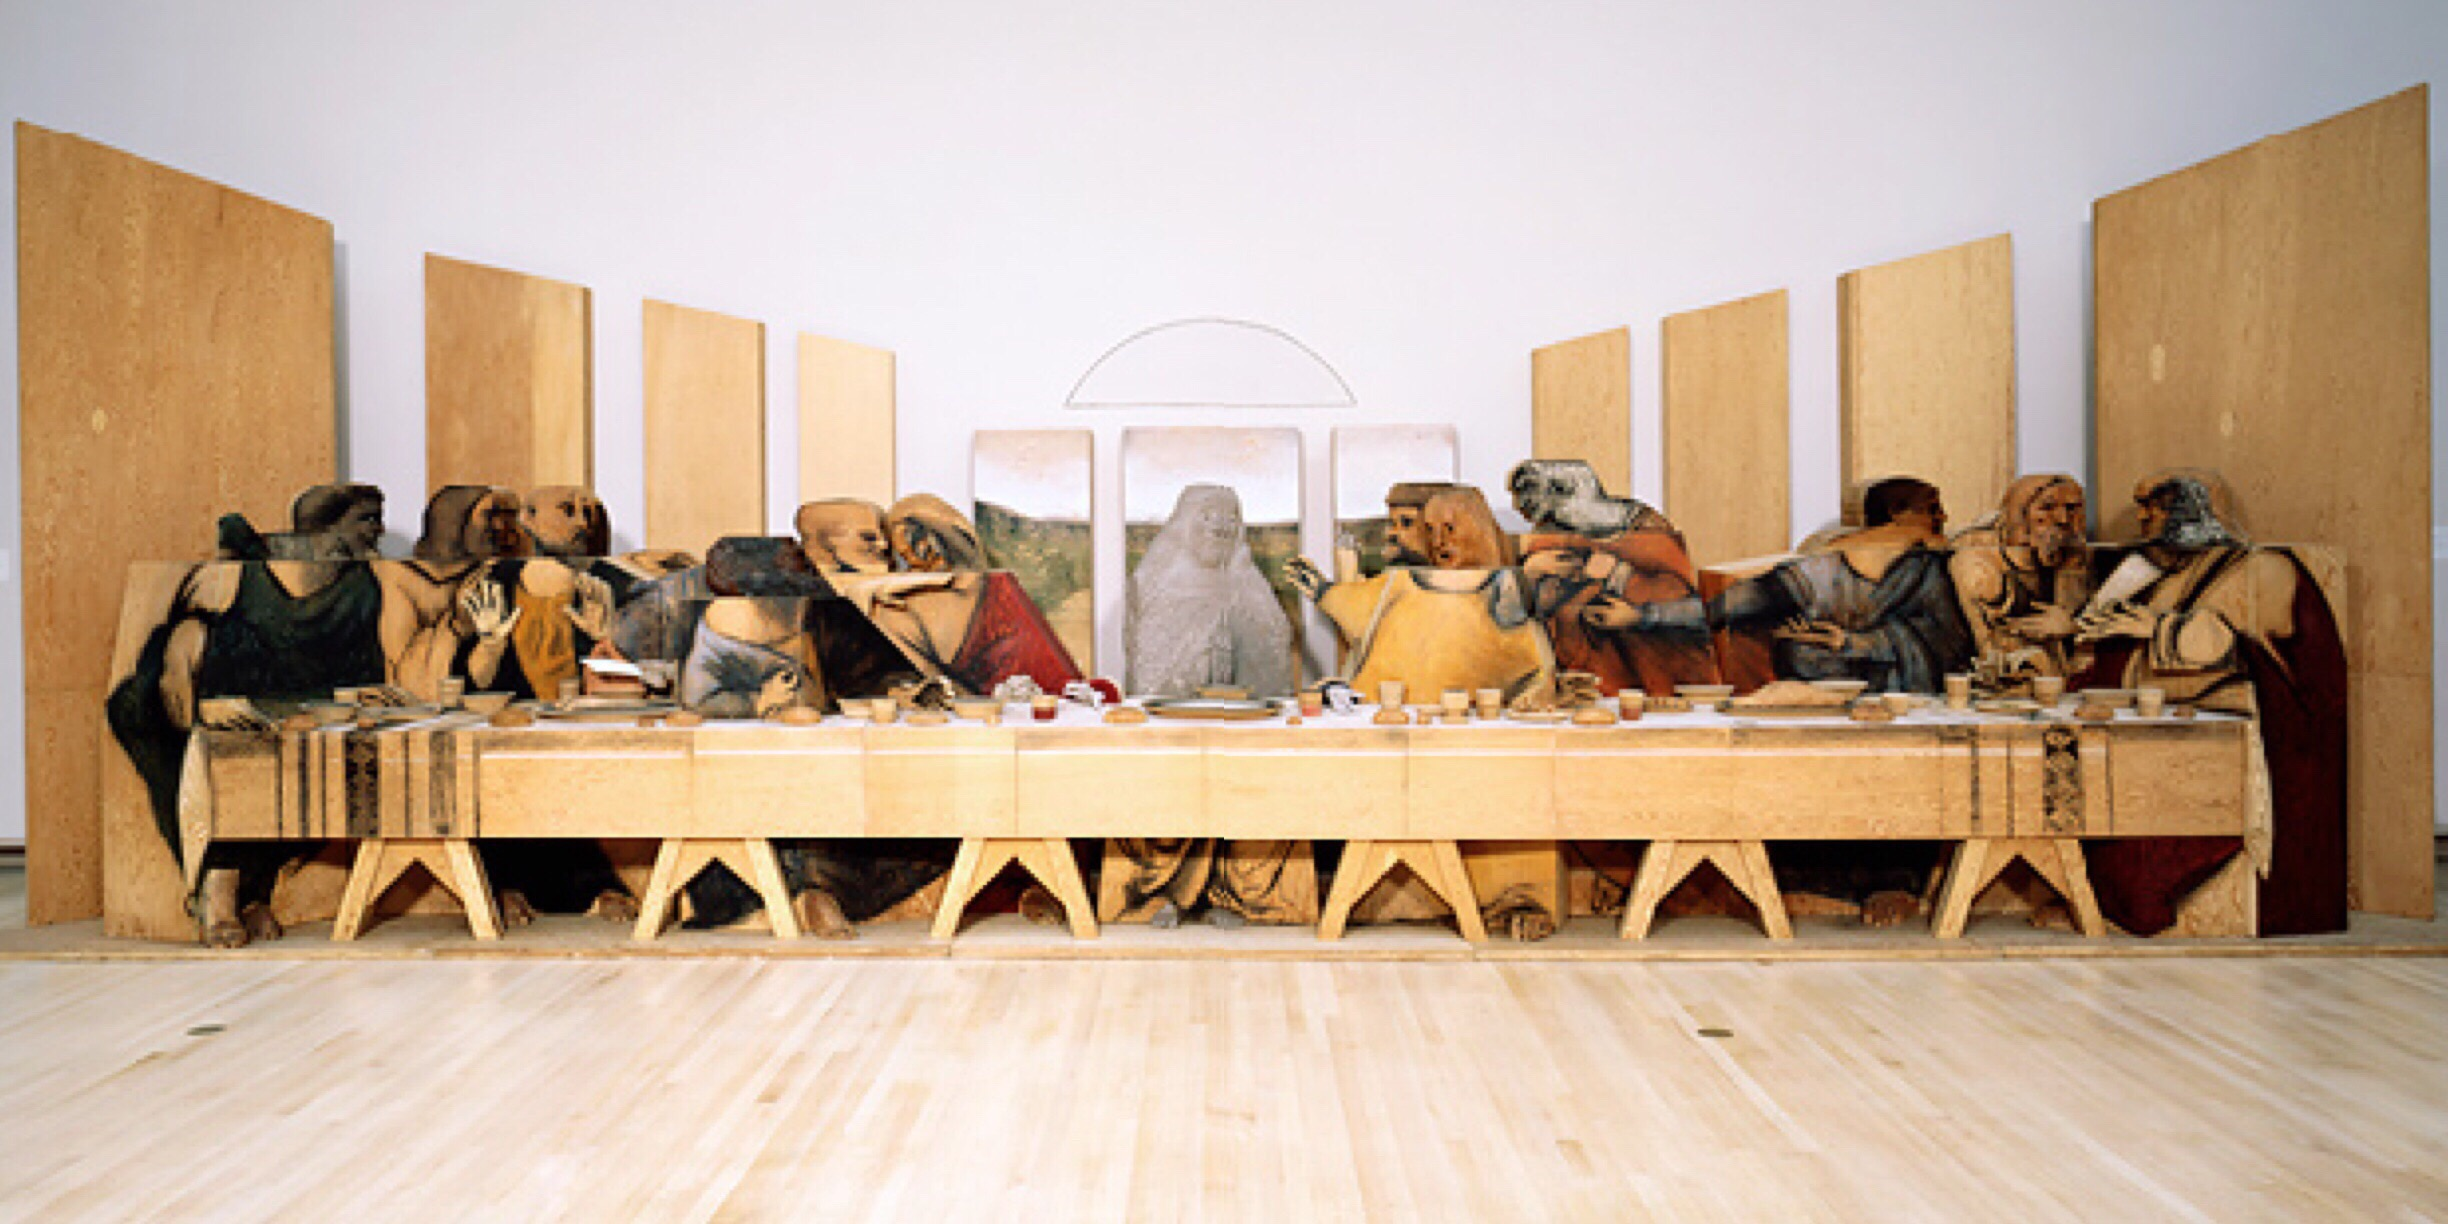 Marisol's Self Portrait Looking at the Last Supper, 1982-84